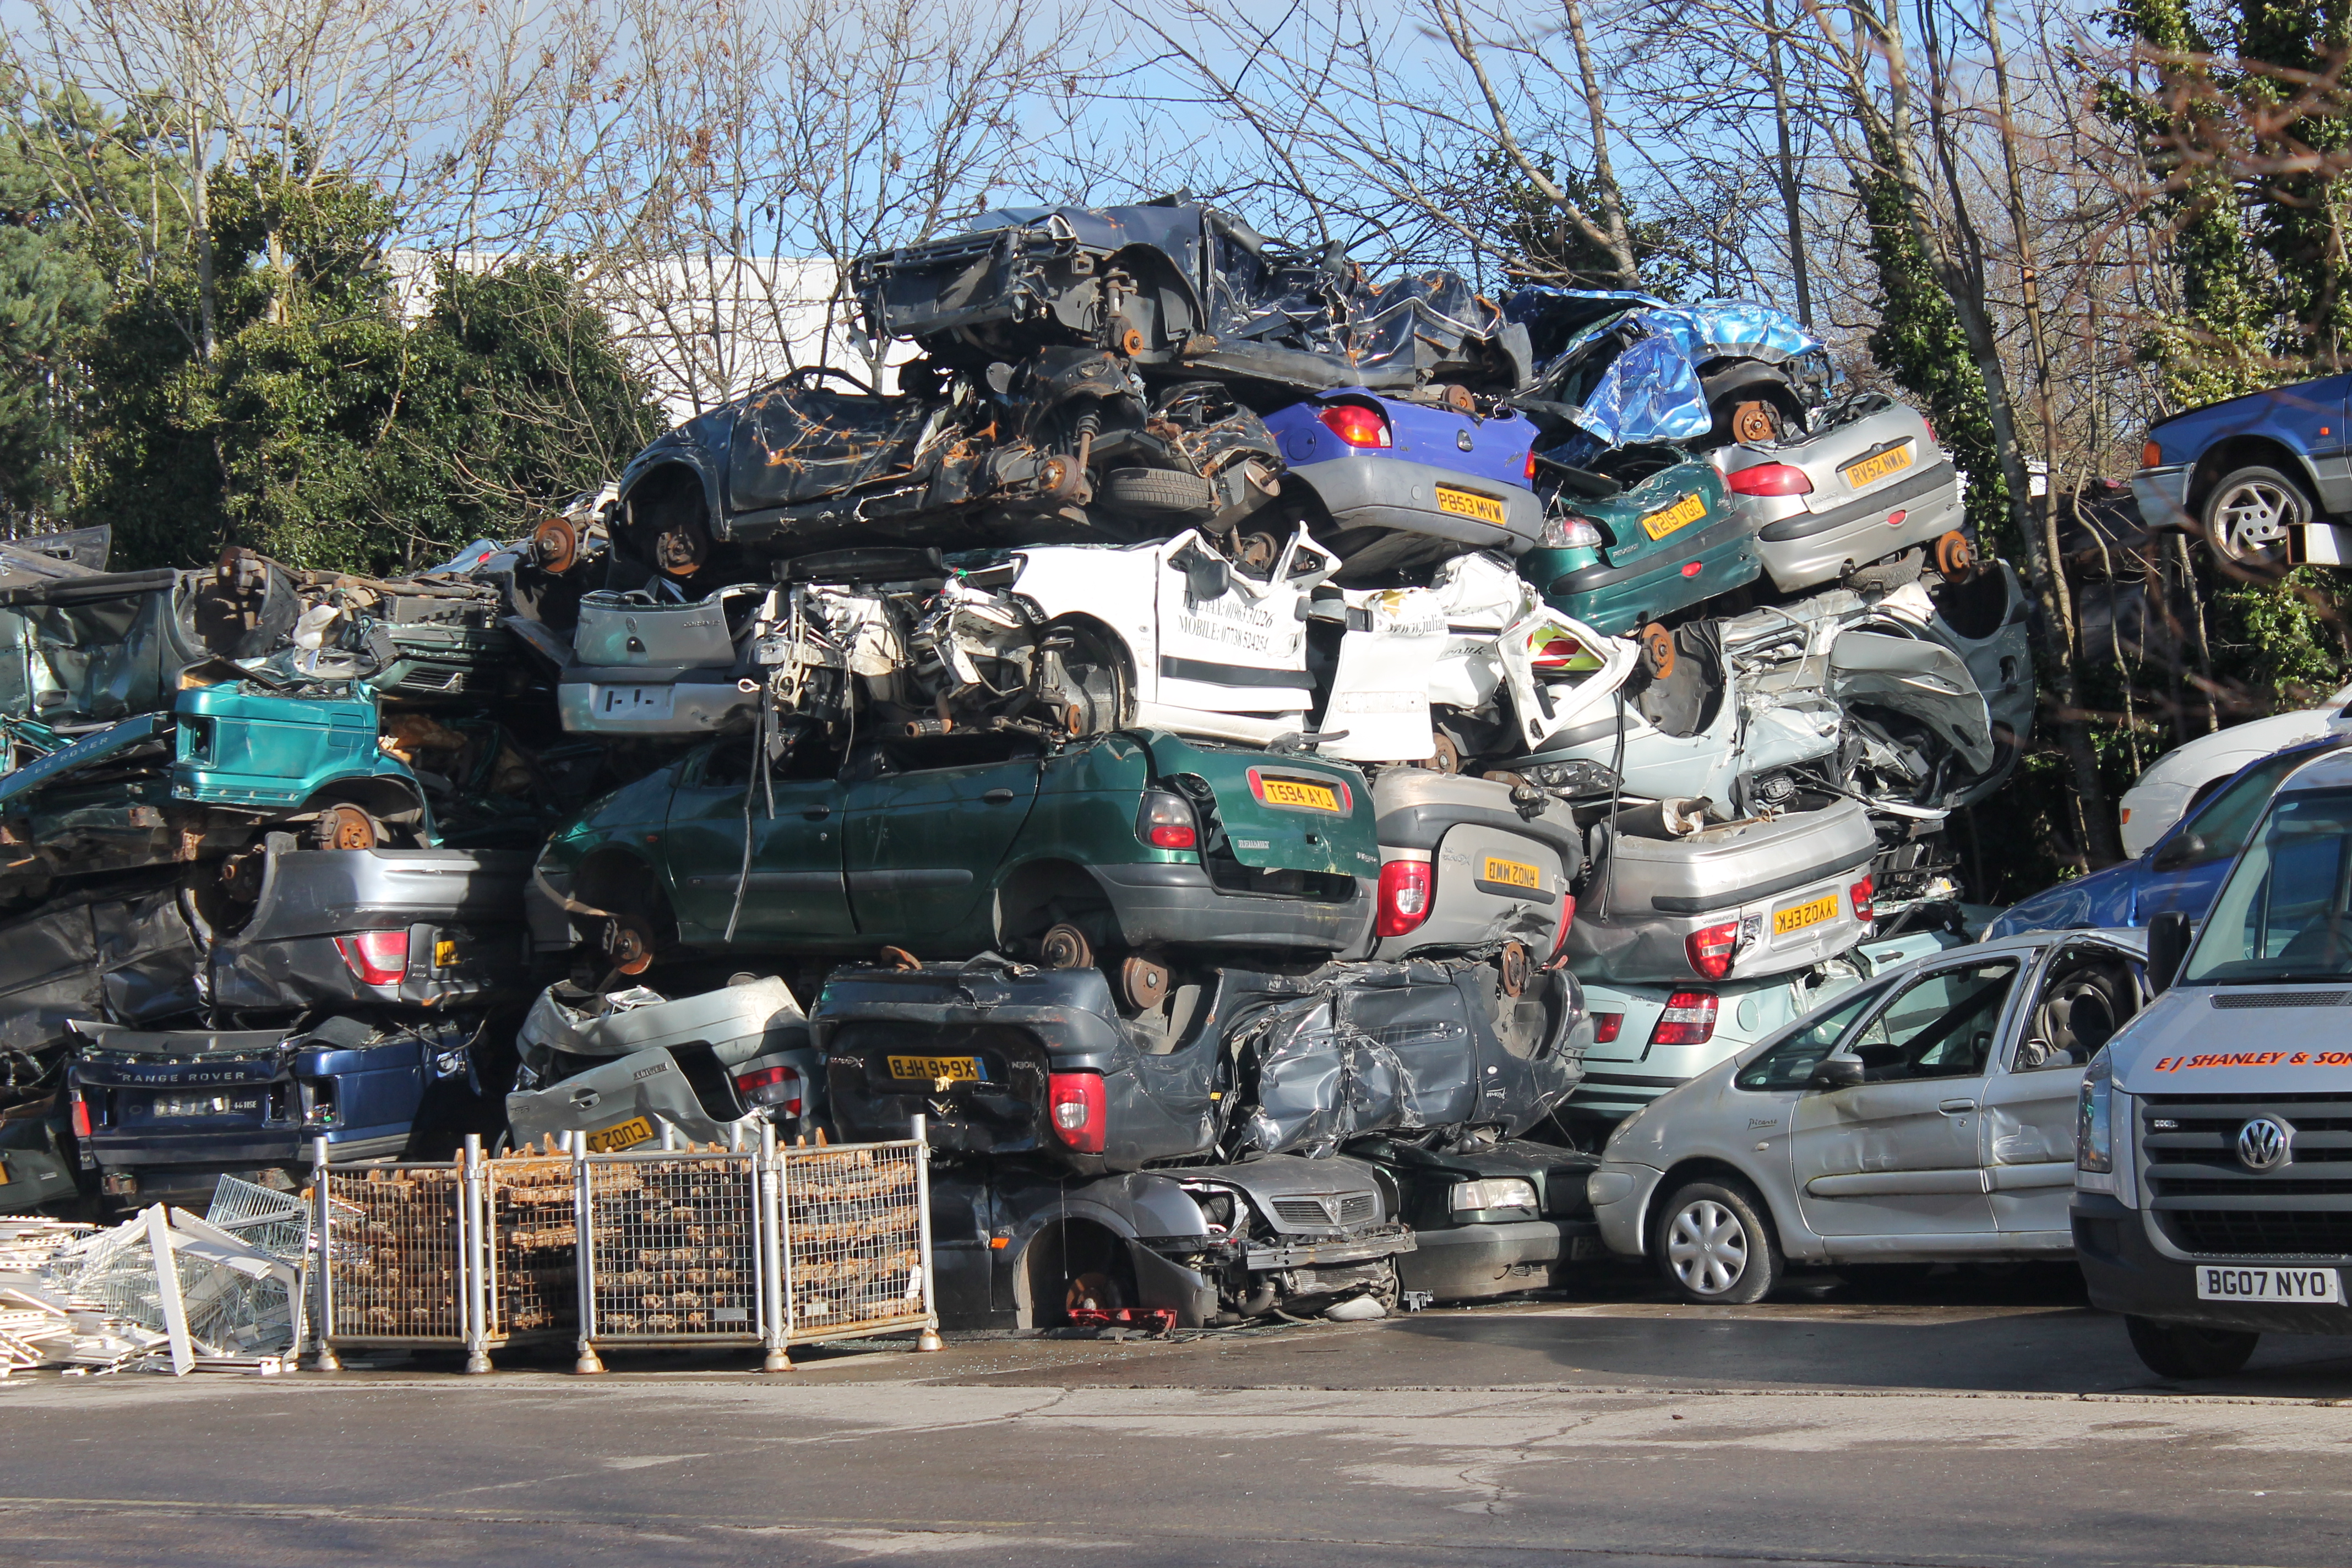 File:Scrap cars (15588473248).jpg - Wikimedia Commons